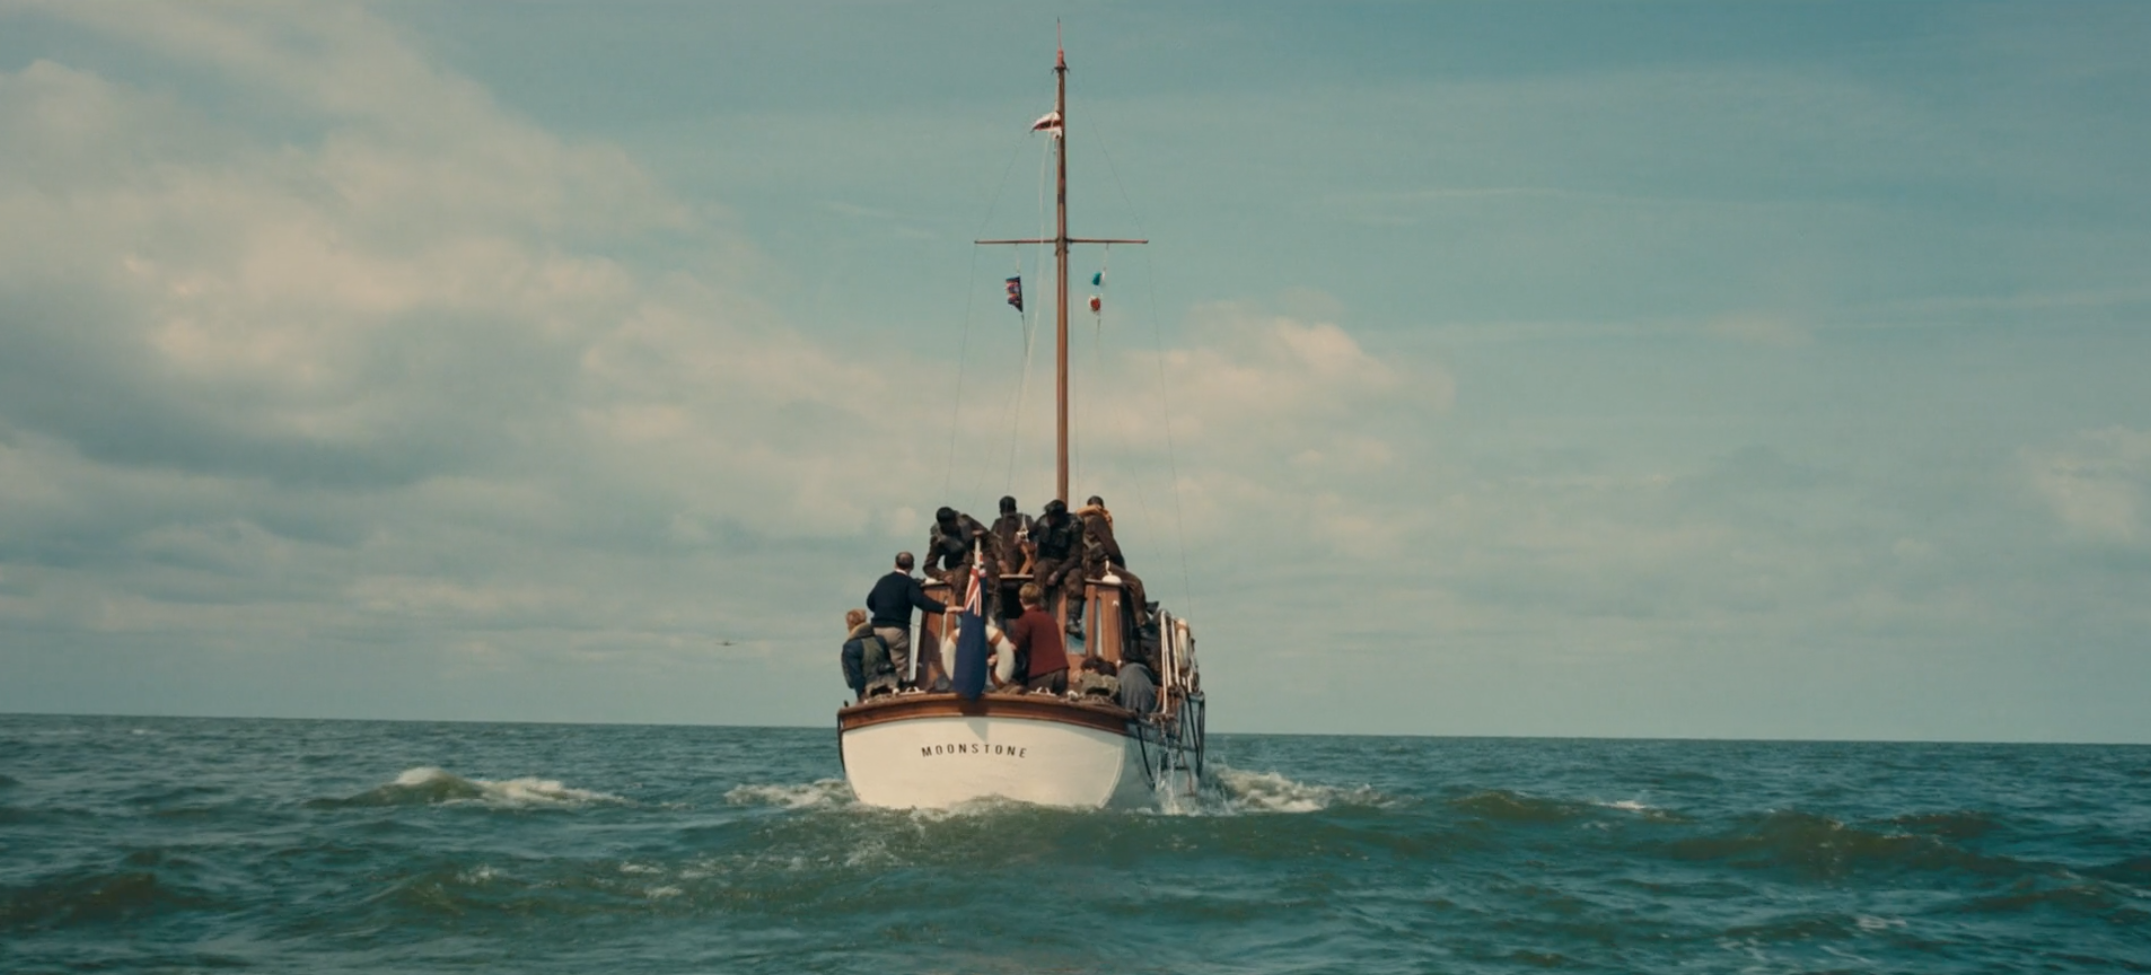 dunkirk_13.png